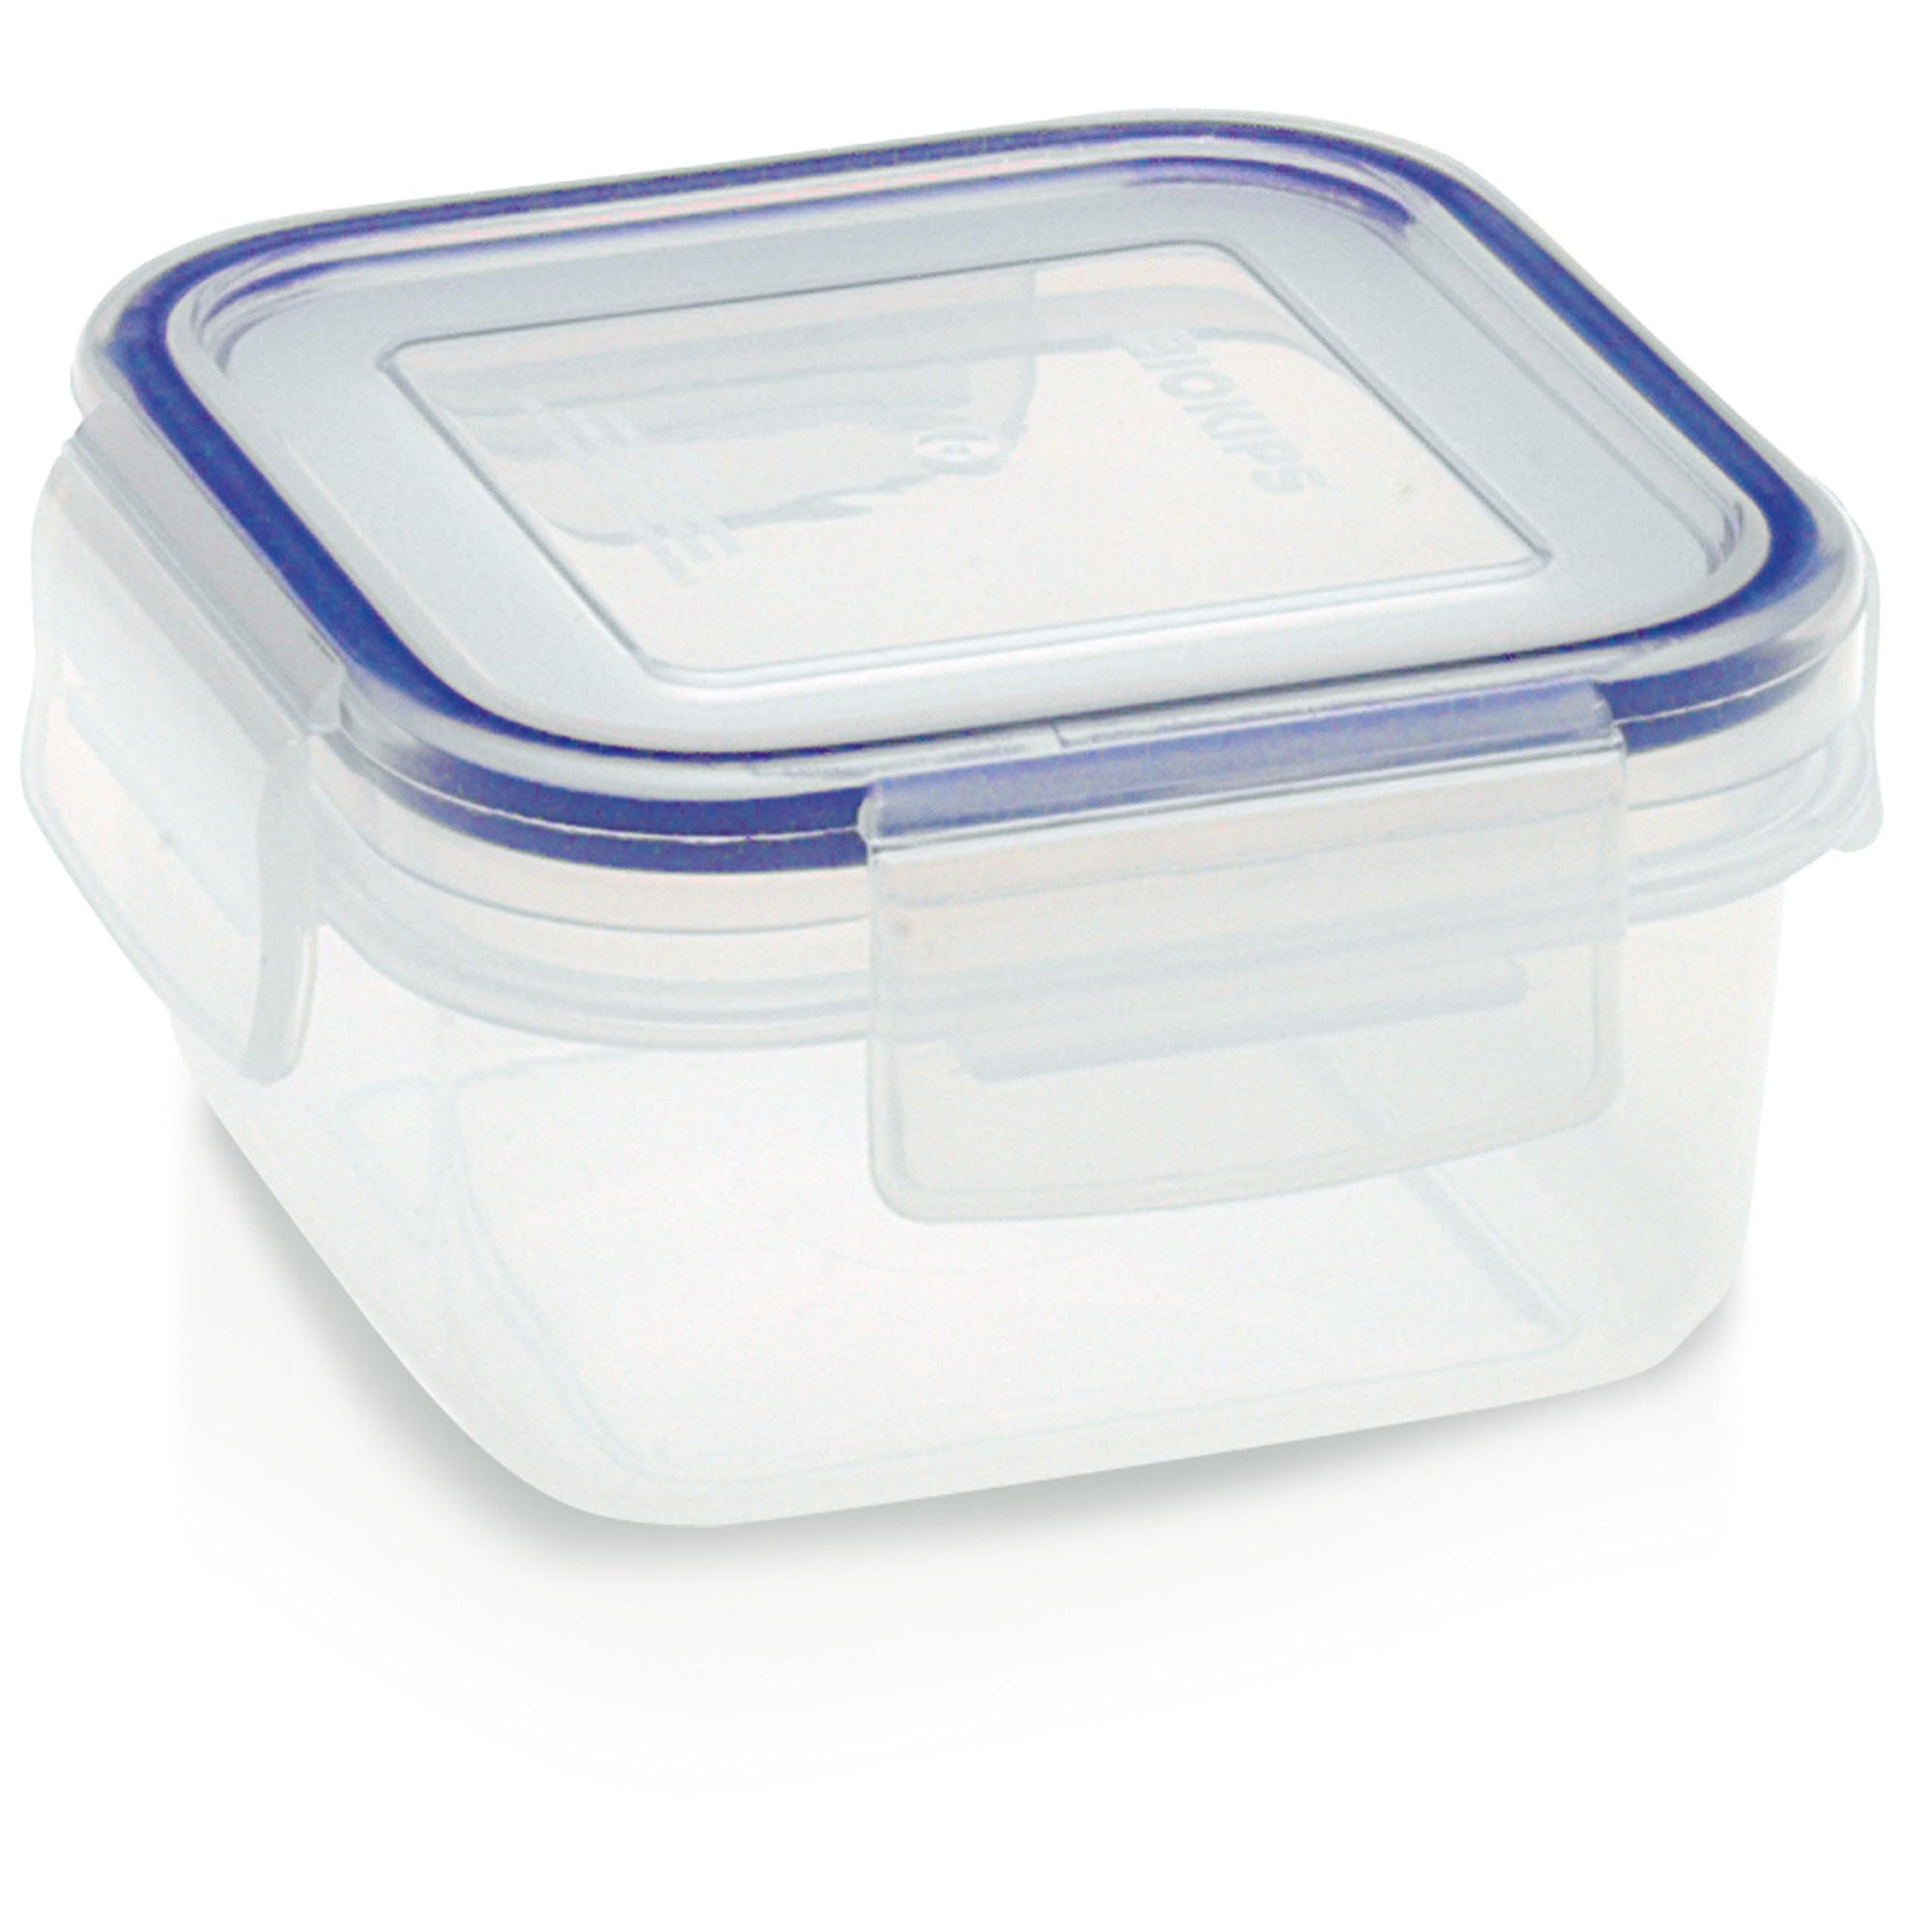 Clip & Close Square Food Storage Box